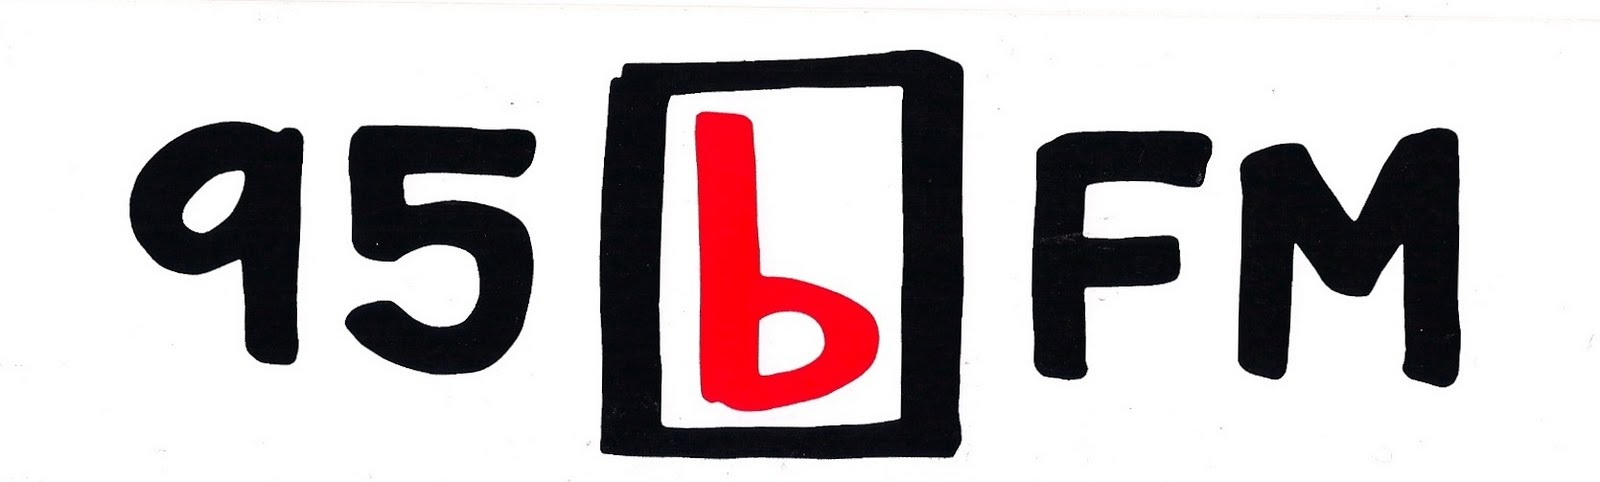 95bFM Is The Student Radio Station From University Of Auckland In New Zealand A Sticker Request Dan Vancouver